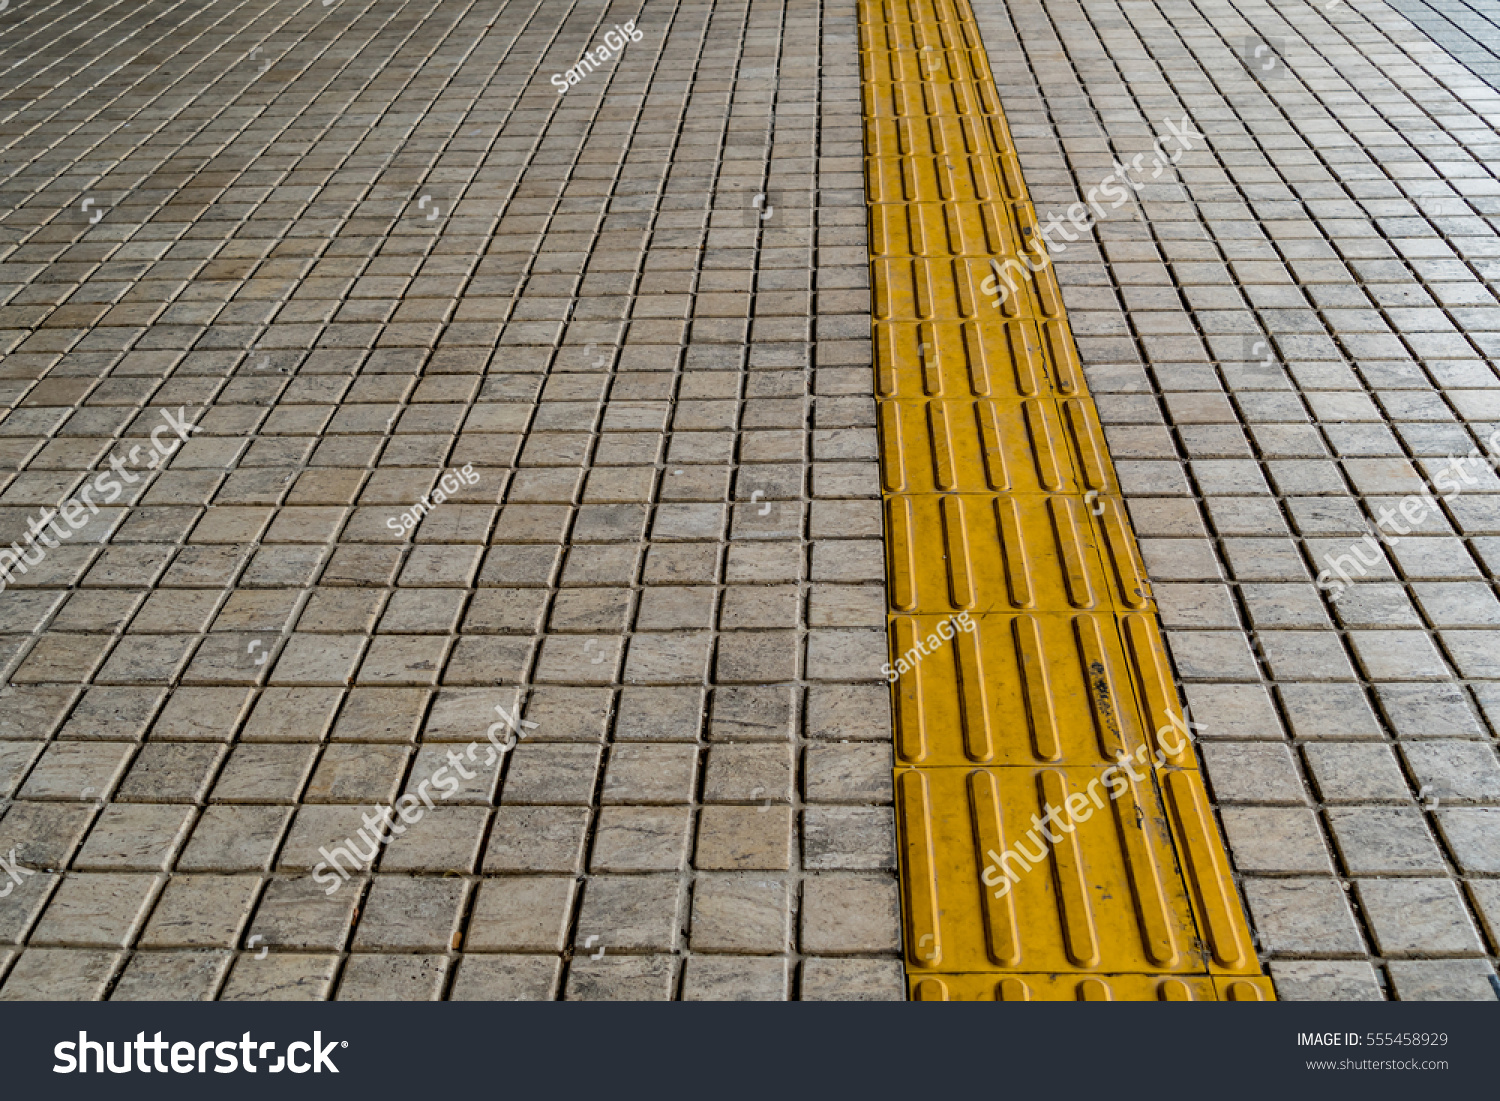 Tactile paving blind handicap on tiles stock photo 555458929 tactile paving for blind handicap on tiles pathway dailygadgetfo Image collections